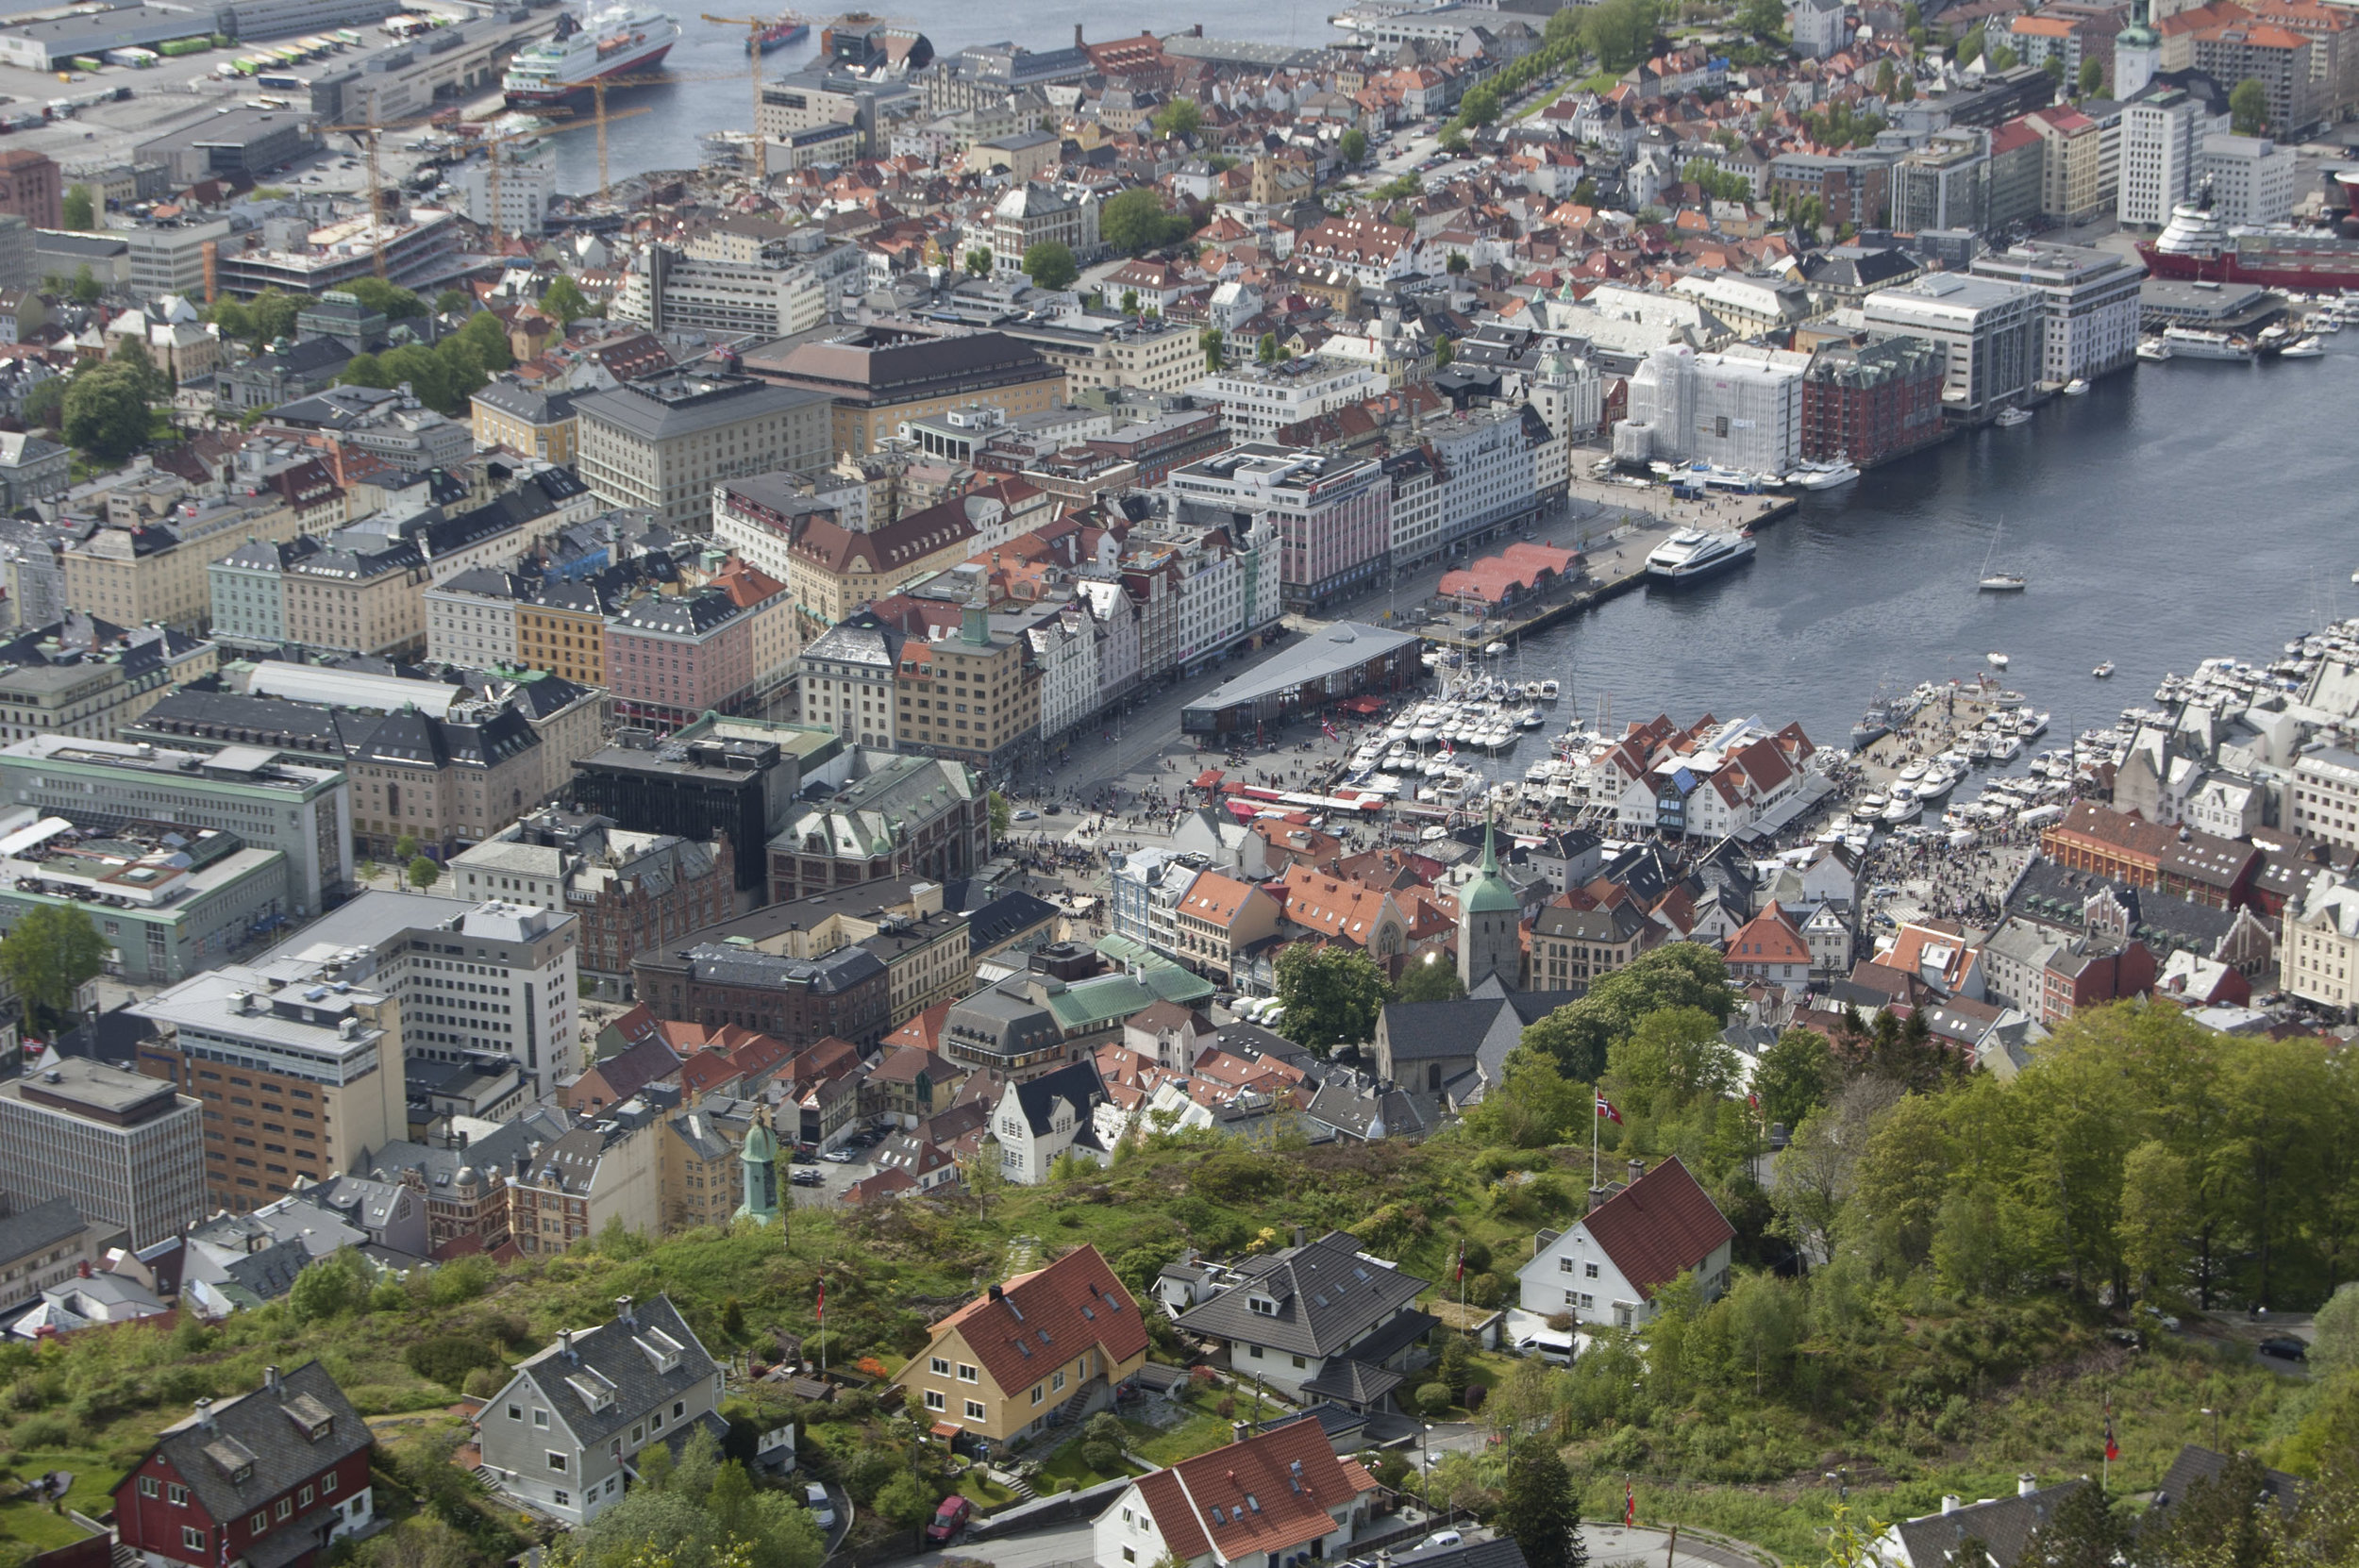 Norway  hosted us for its 200th birthday celebration. Bergen shared its dock-side charm and maritime history. A day-long fjord and rail tour showcased the country's natural beauty.  Read more...